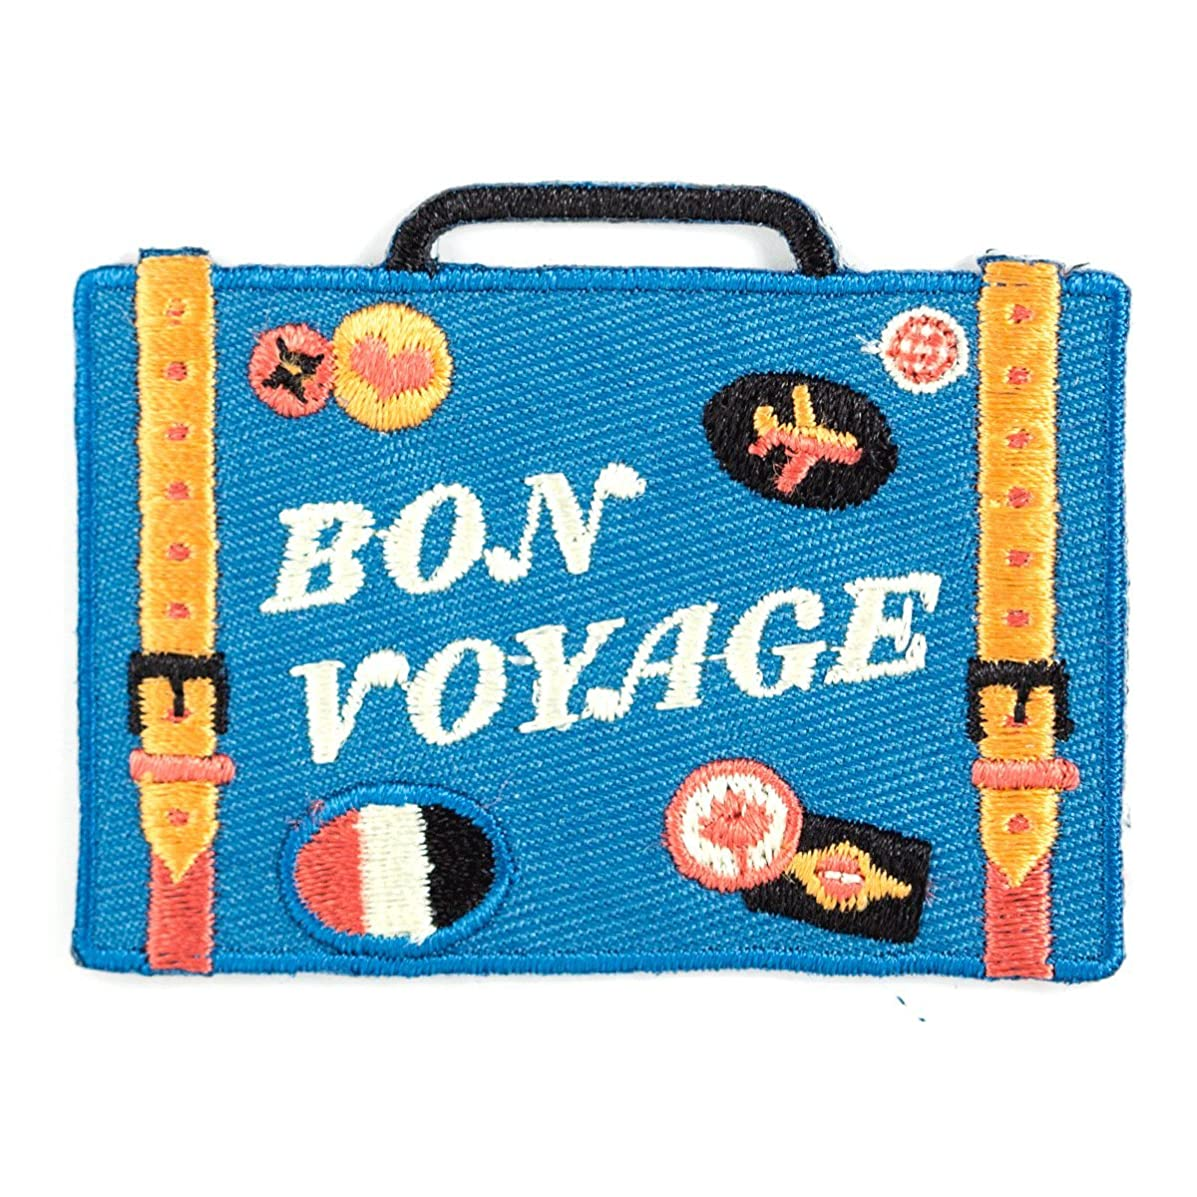 These Are Things Bon Voyage Embroidered Iron On or Sew On Patch